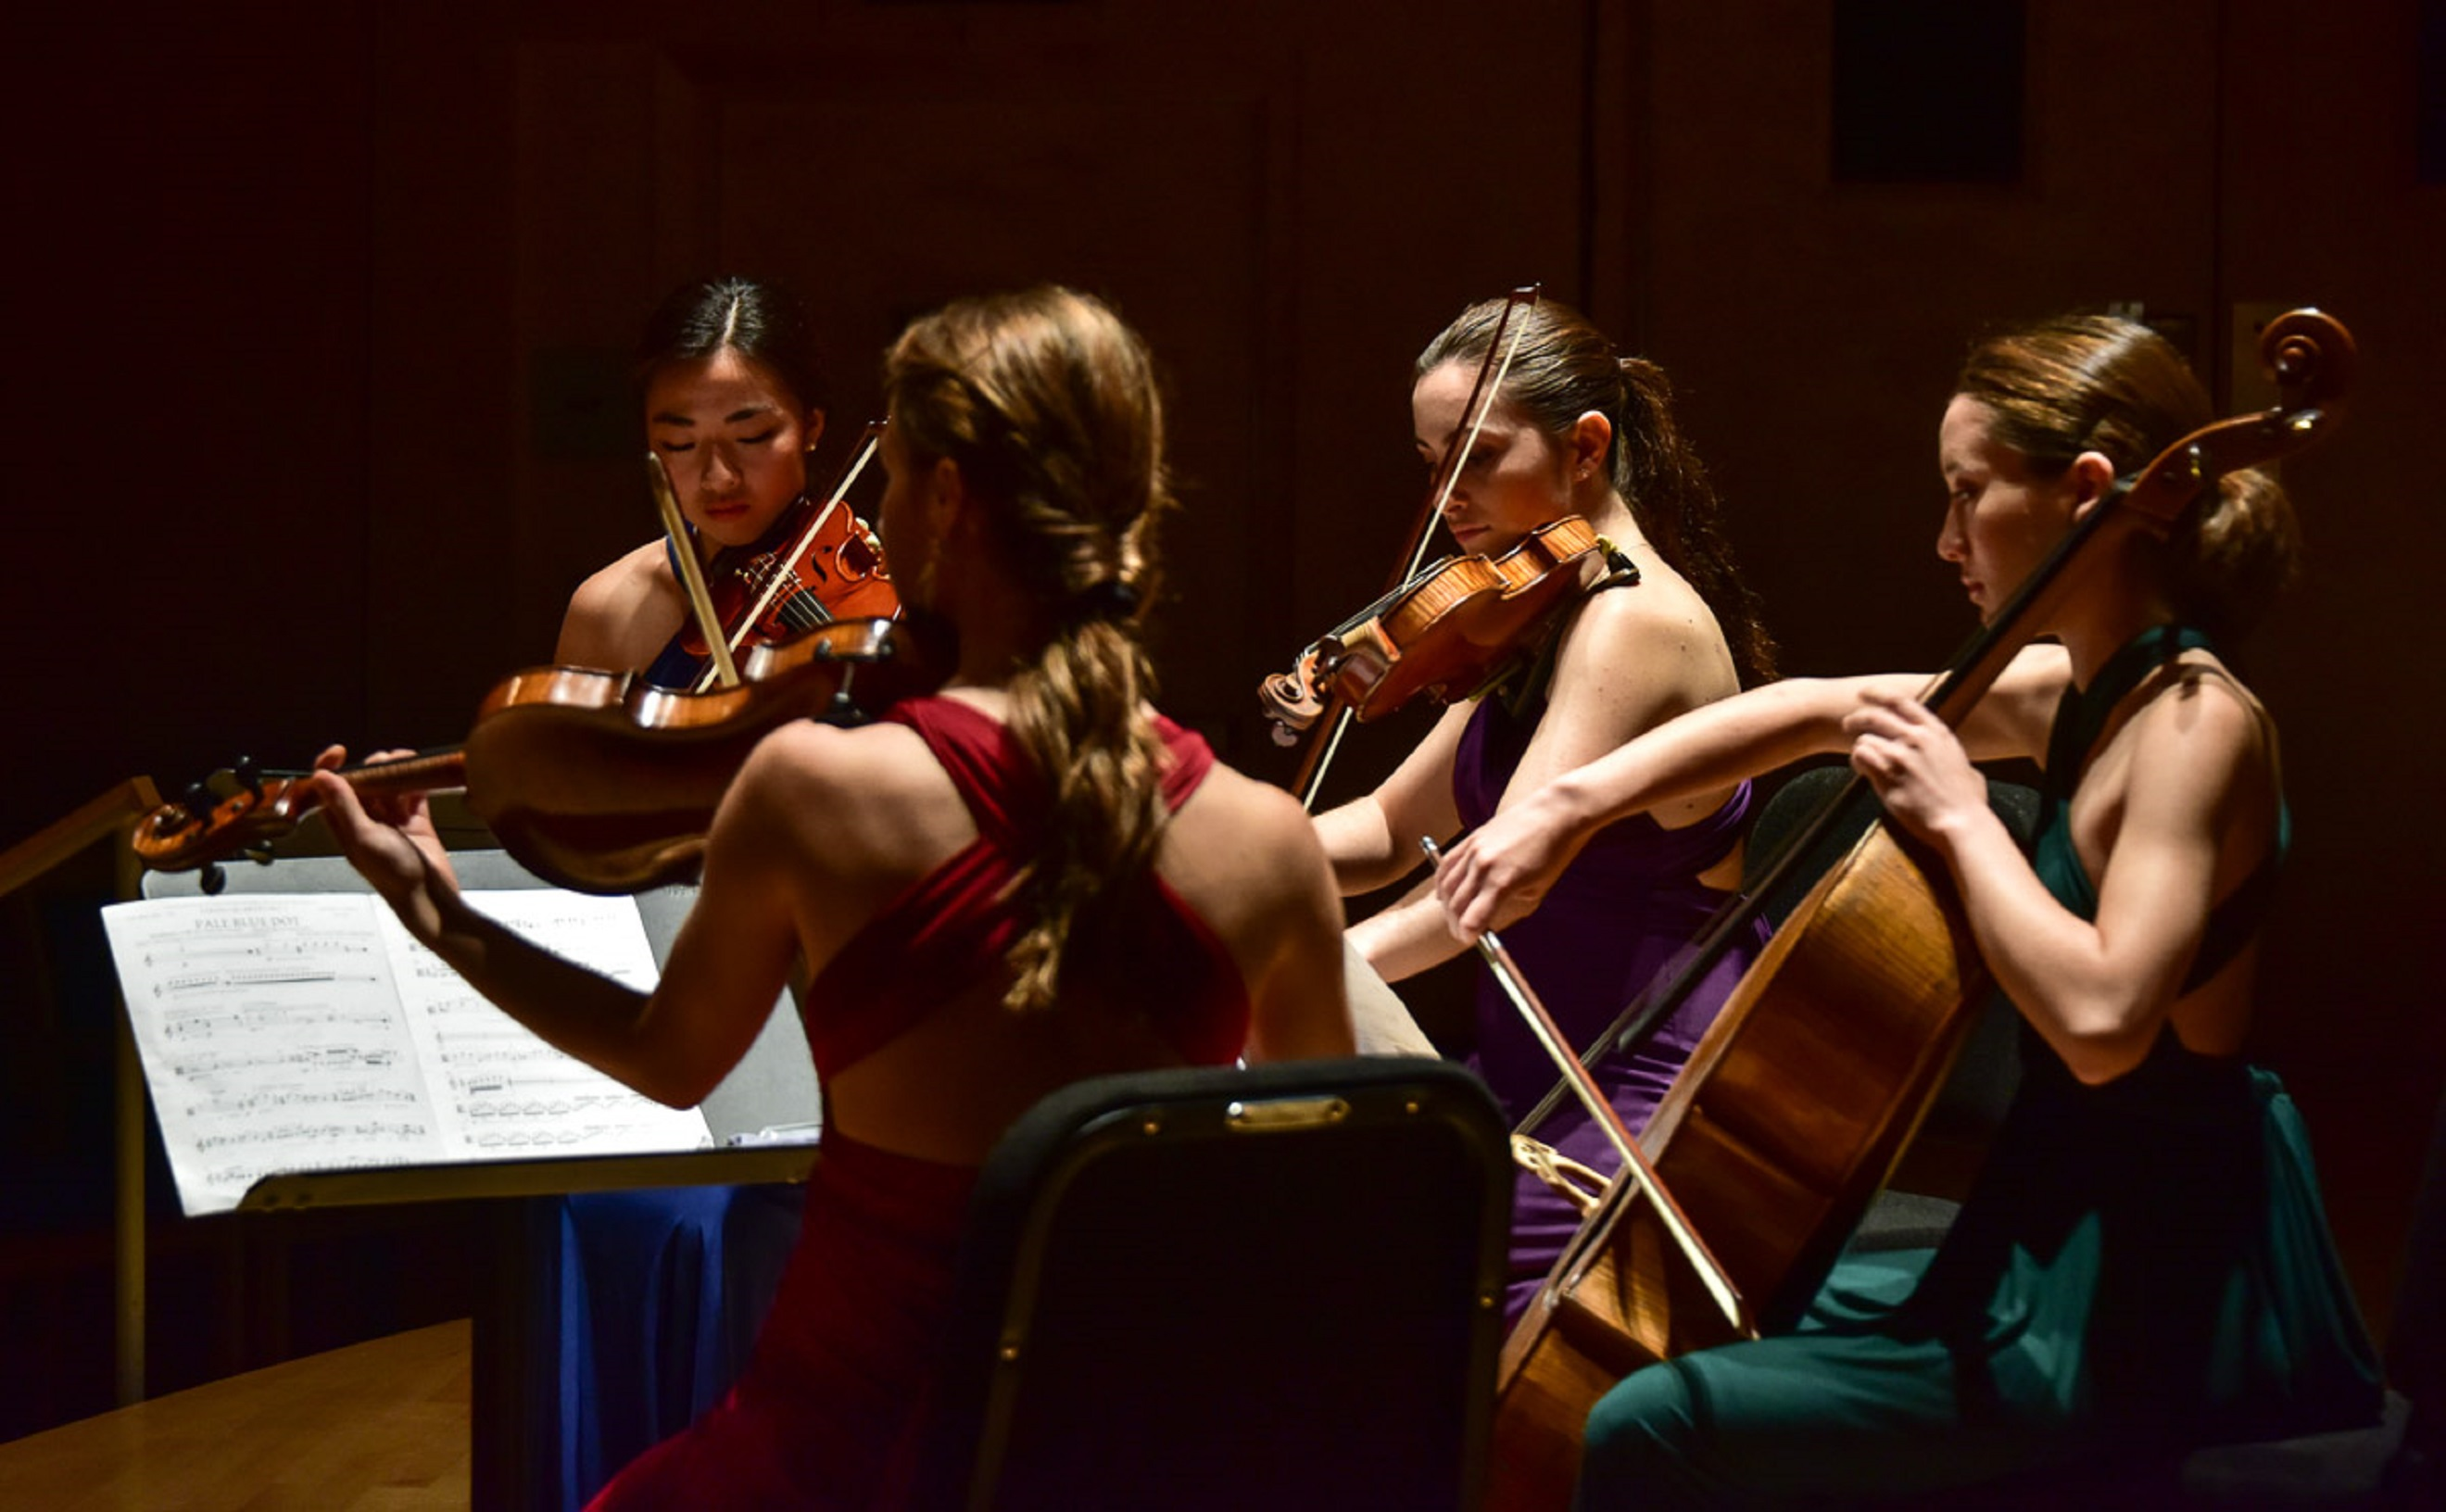 String quartet performing and reading music off sheets